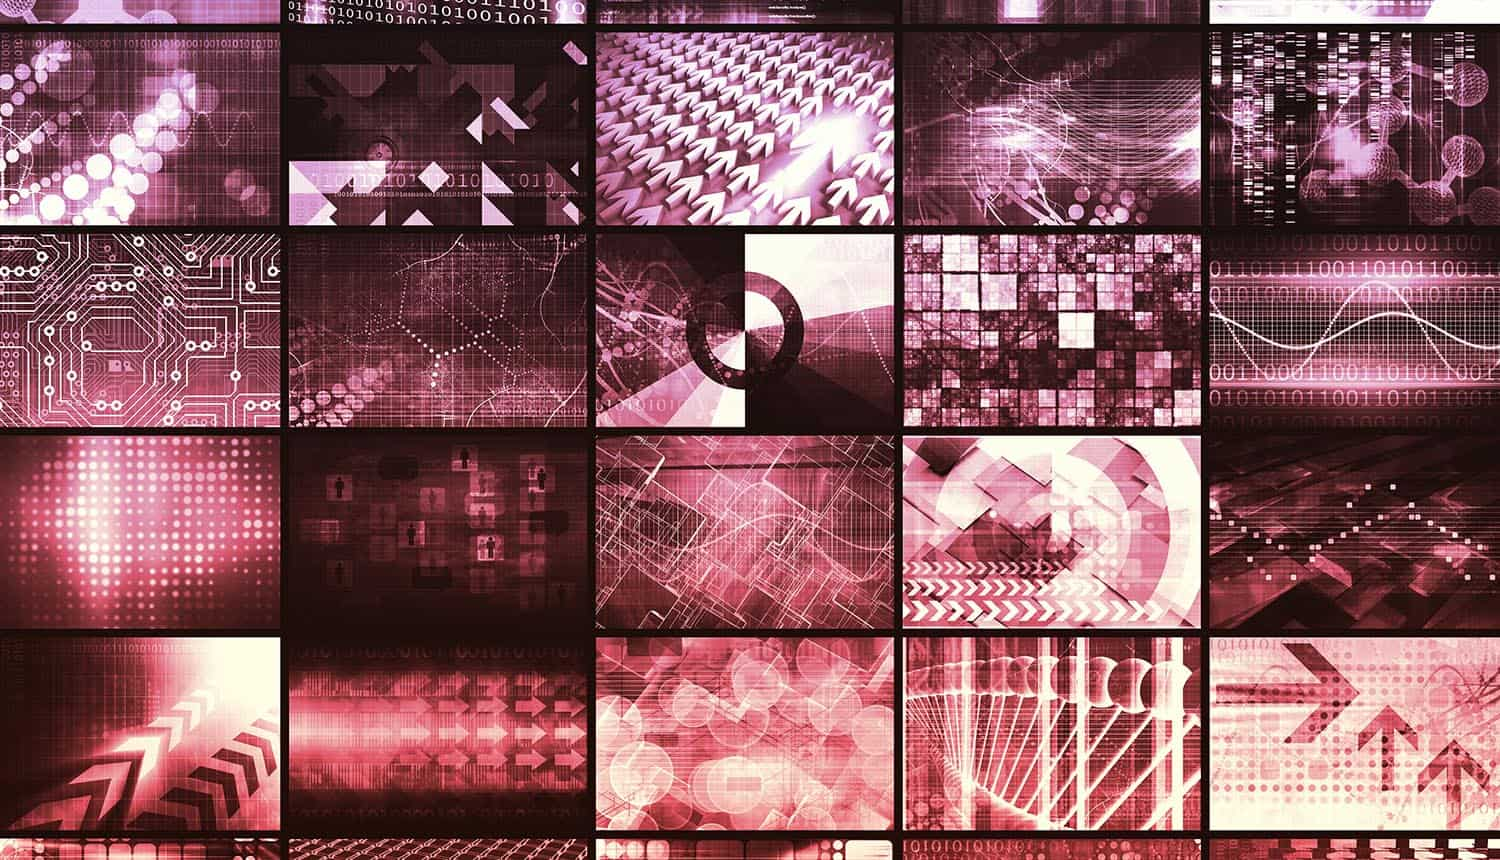 Image of multiple screens representing internet surveillance from Pentagon's leaked database